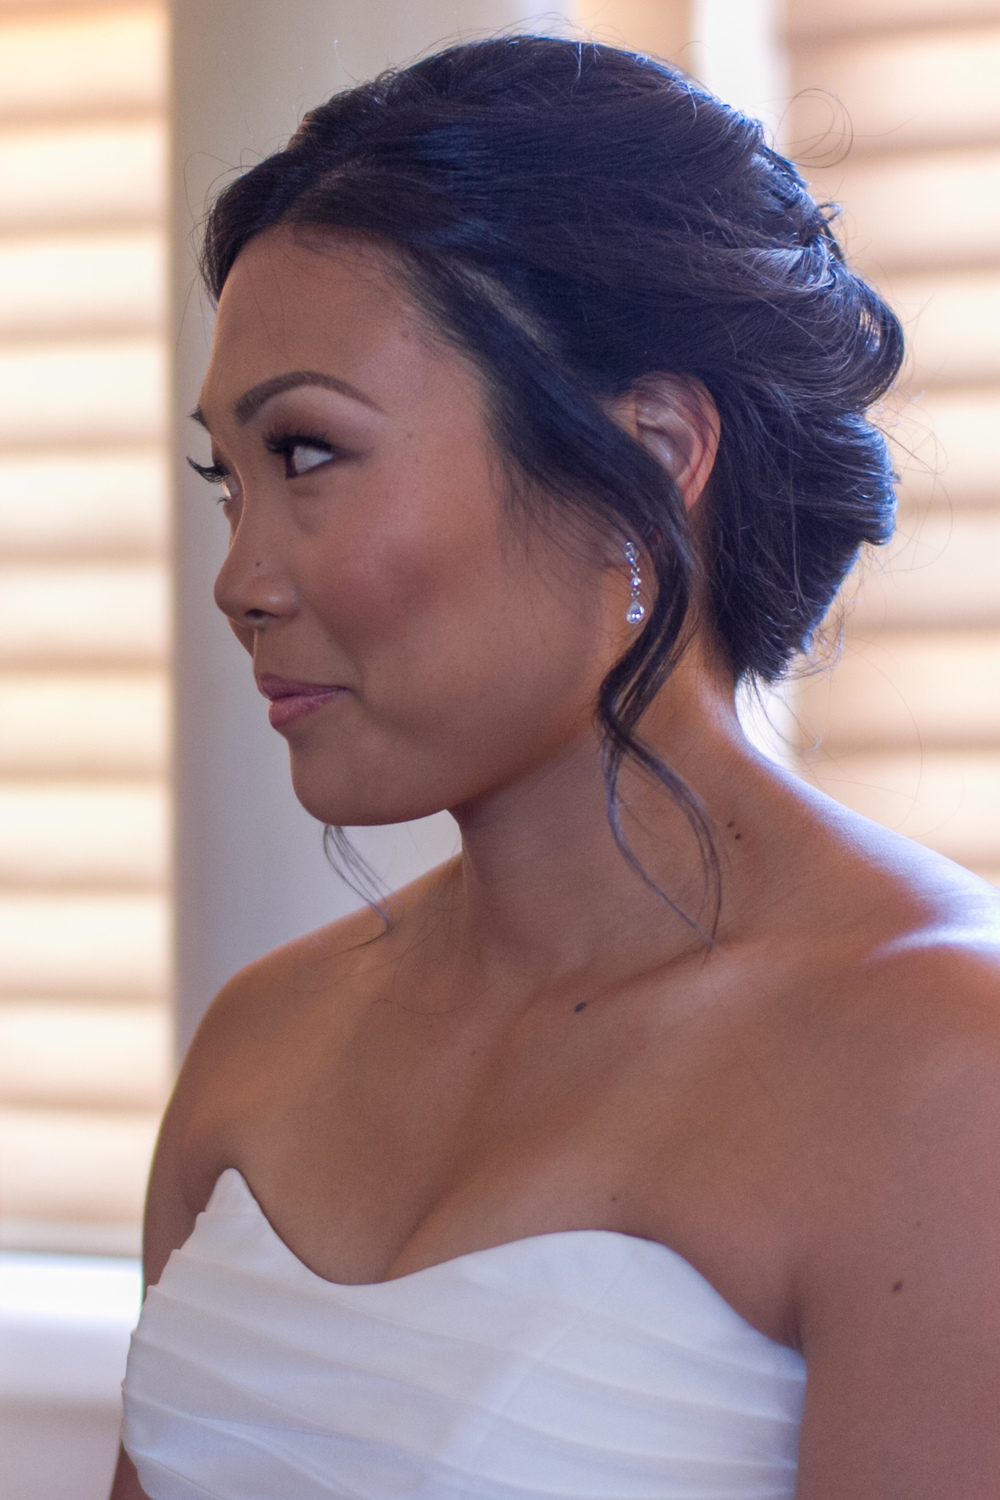 Vizcaya-Inn-Hawaii-San-Francisco-Napa-Blush-Wedding-Makeup-and-hair-Red-Cart-Studios